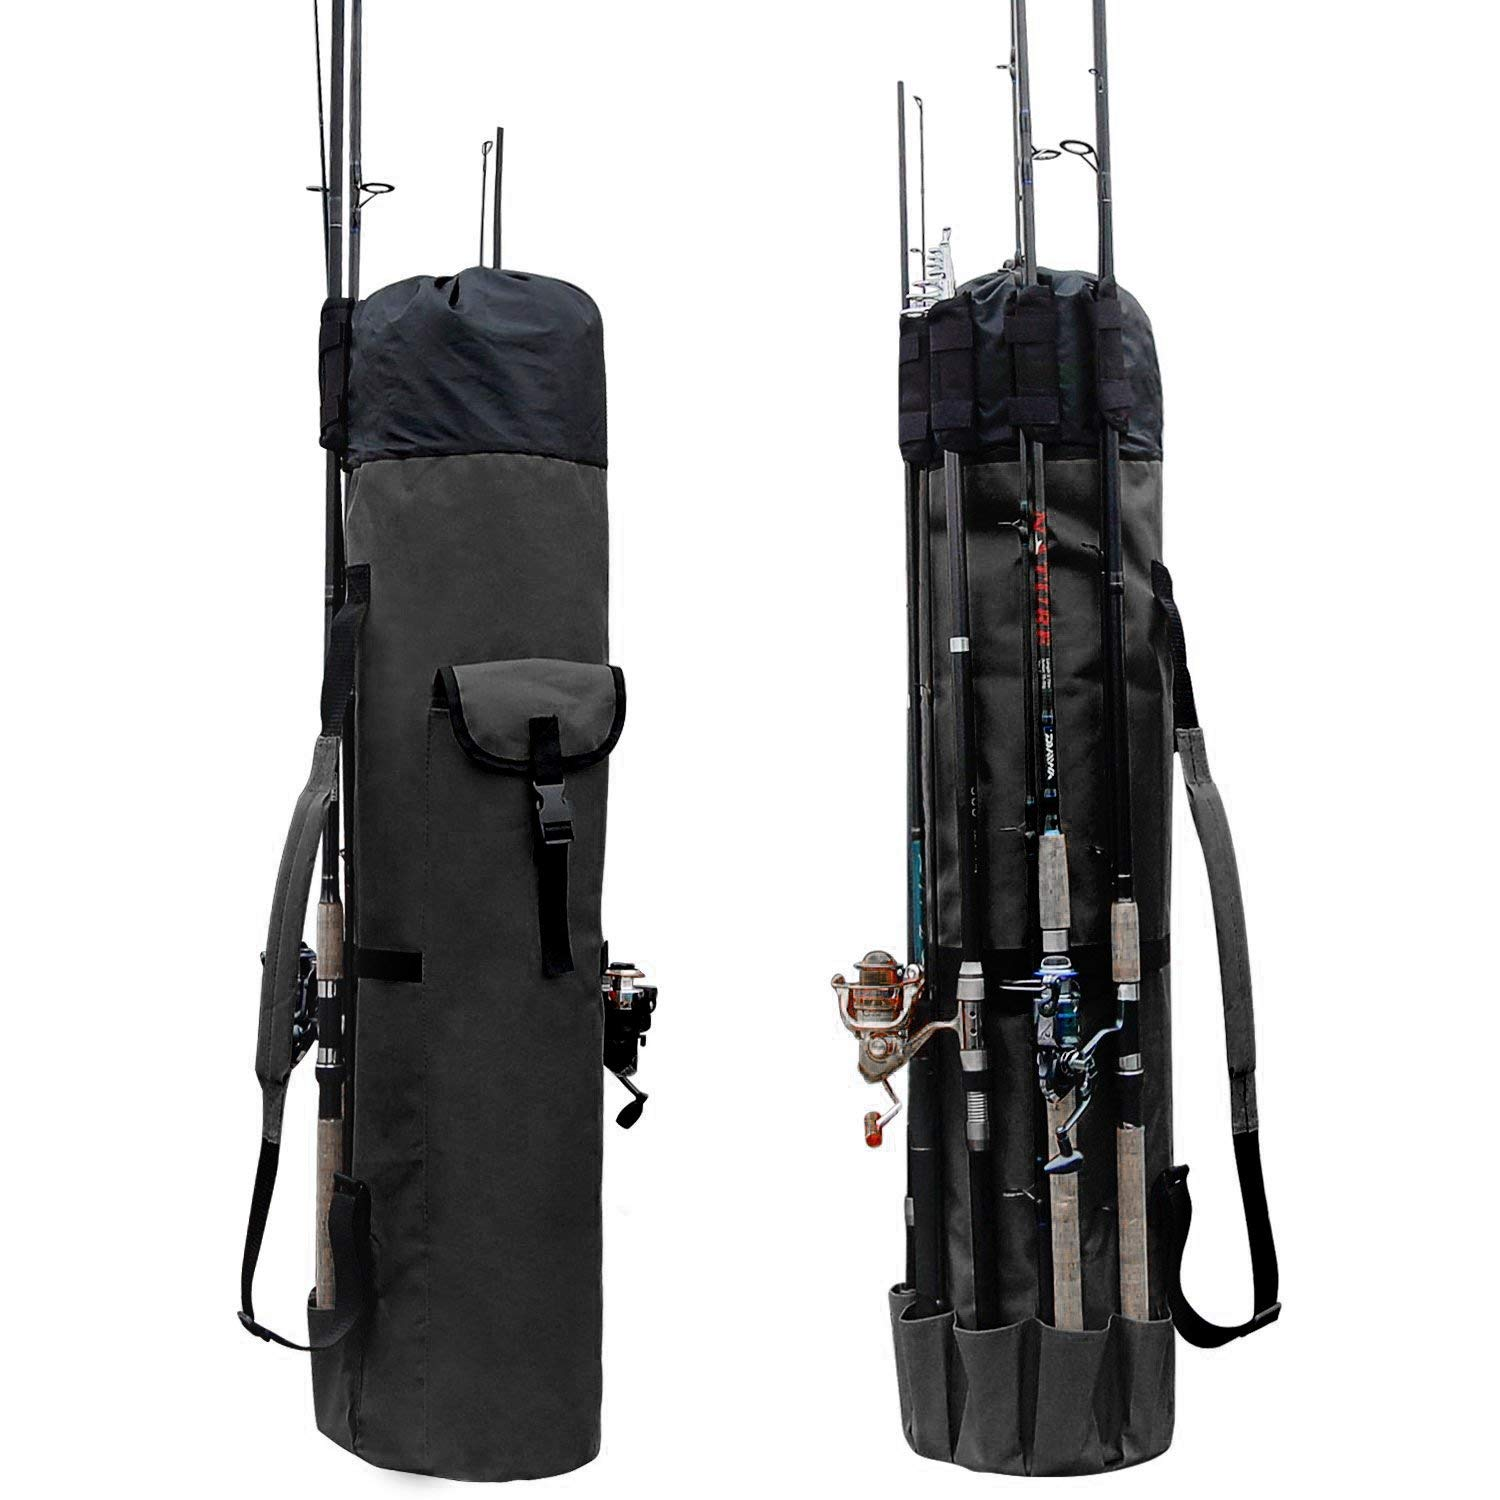 Amazon Com Allnice Durable Canvas Fishing Rod Reel Organizer Bag Travel Carry Case Bag Holds 5 Poles Tackle Black Sports Outdoors